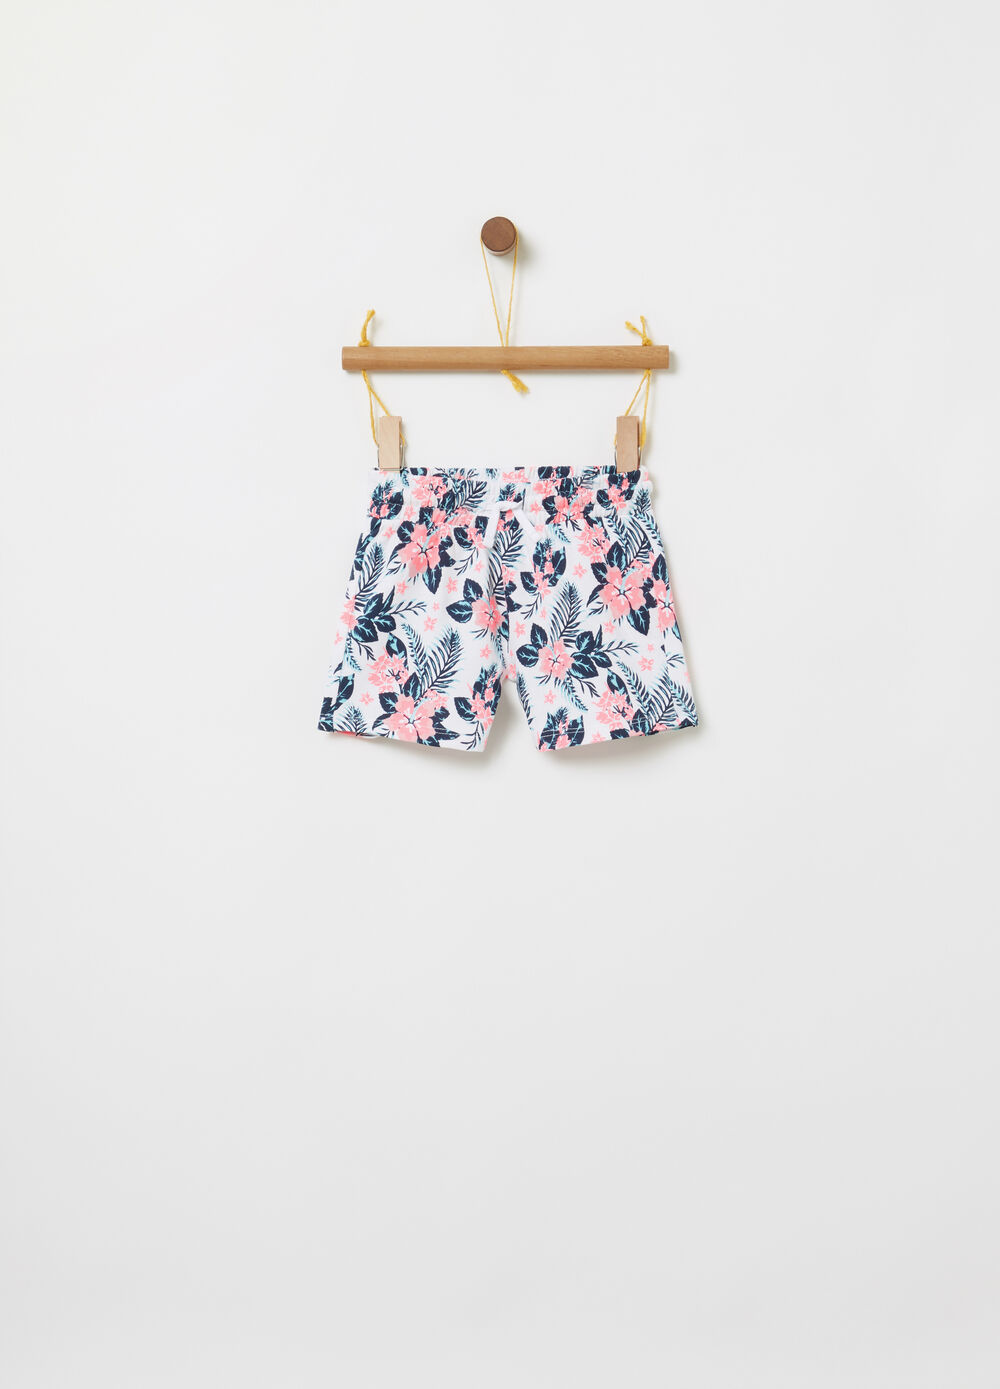 Floral pattern shorts in 100% cotton